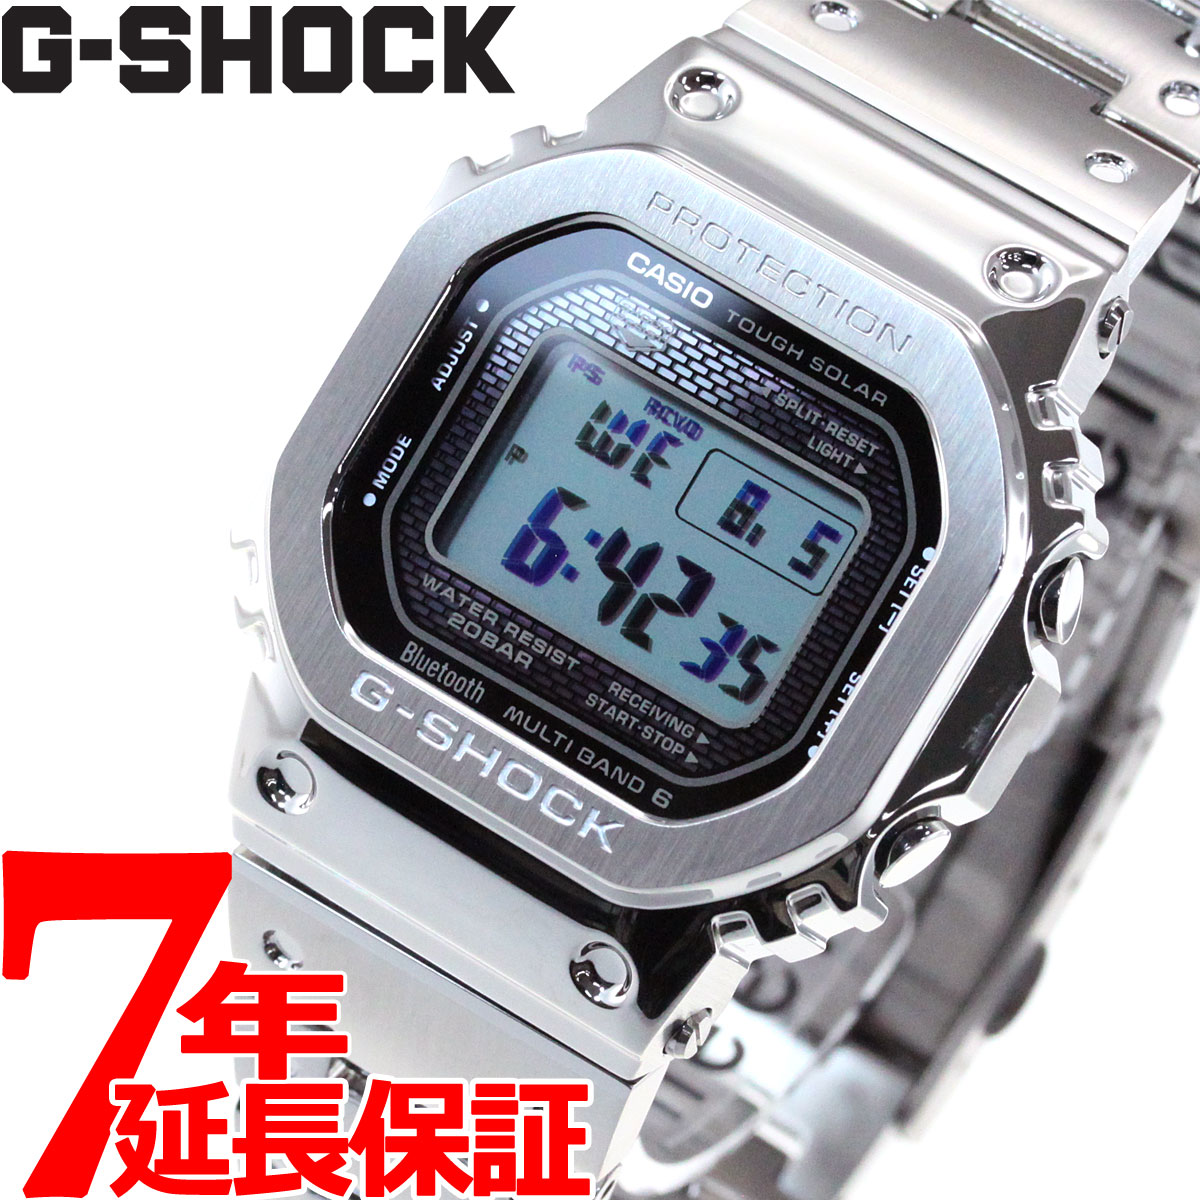 Only Just Point Up To 38 Times In The Shop Until 19th 9 59 Casio G Shock Casio G Shock Digital Solar Radio Time Signal Bluetooth Watch Men